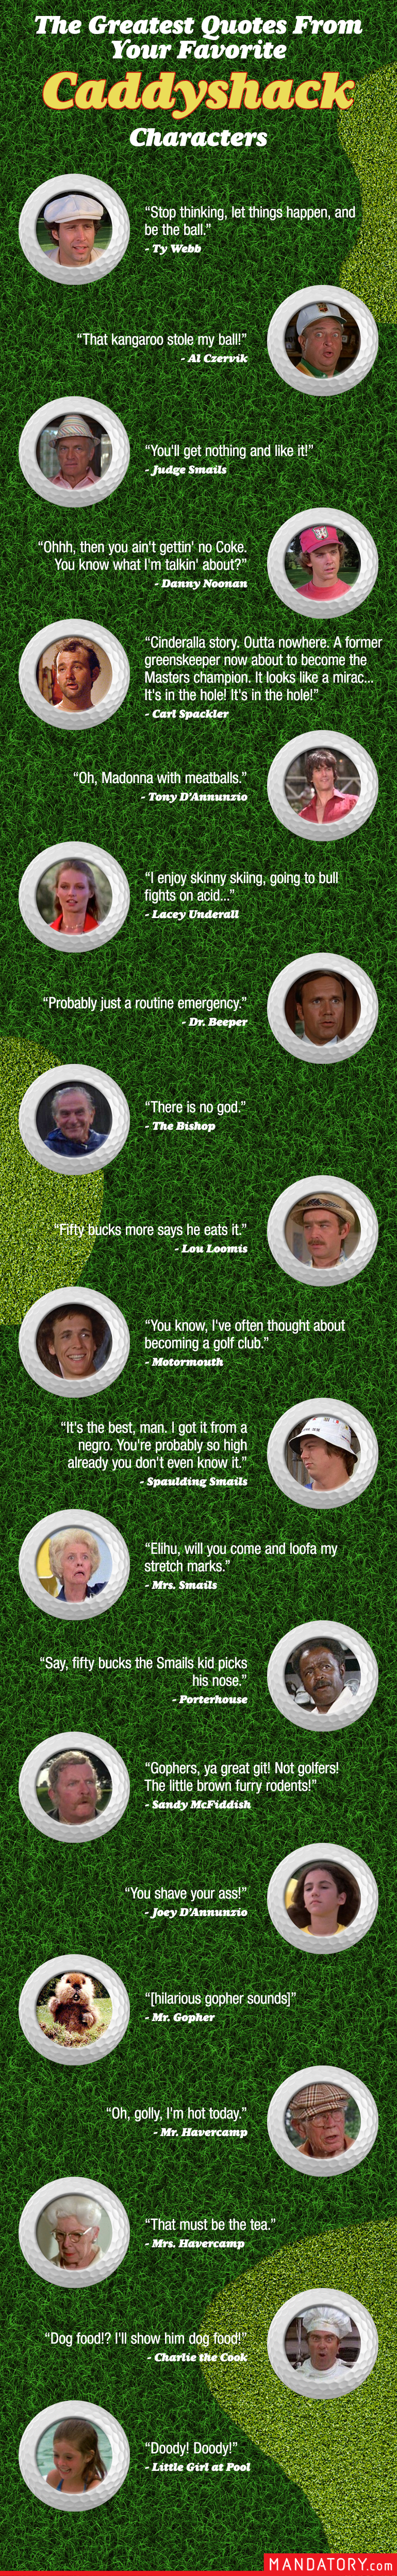 caddyshack quotes, greatest quotes from caddyshack, funny caddyshack quotes